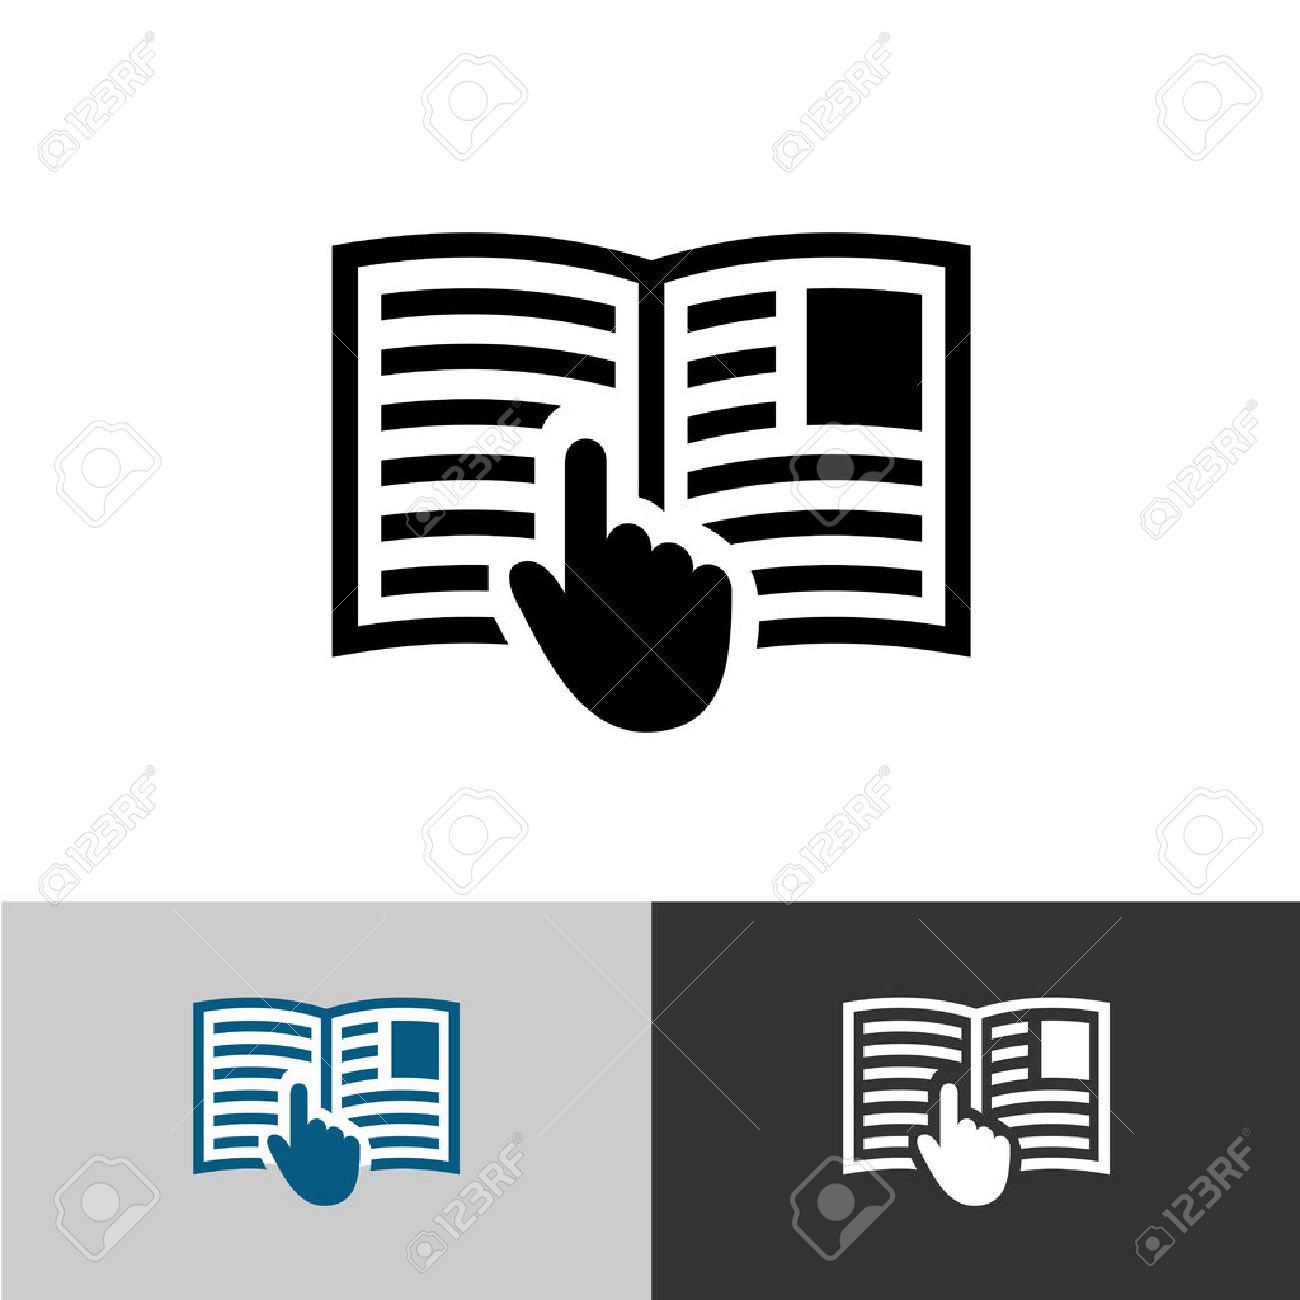 instruction manual icon open book pages with text images and rh 123rf com Instruction Manual Book Owner's Manual